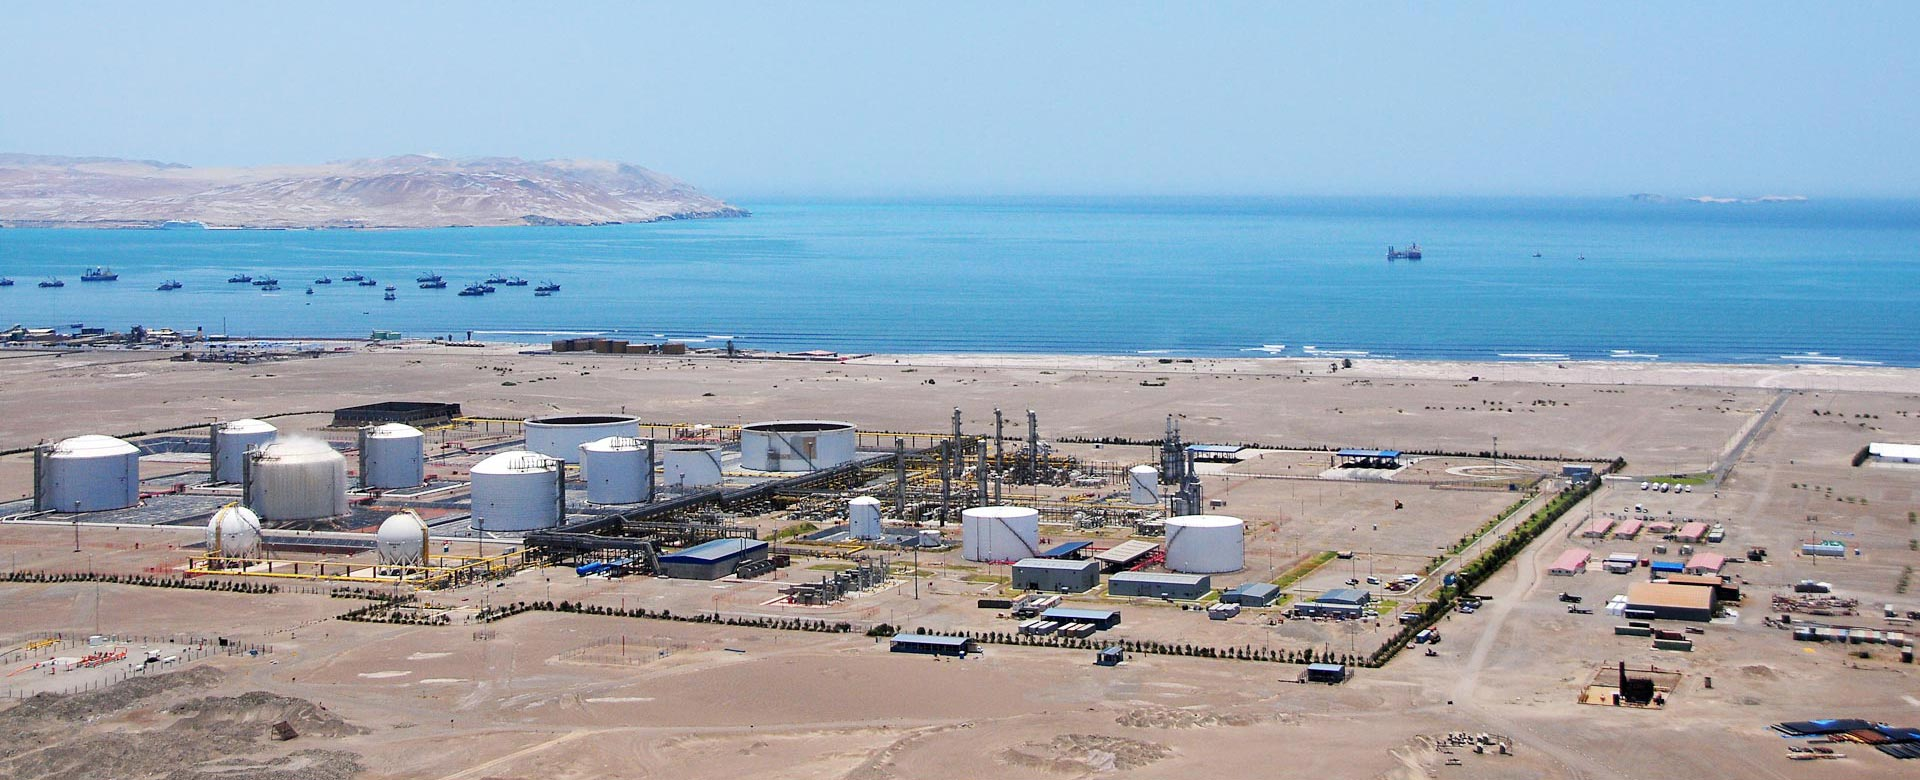 Petroperú set to receive fuel infra bids amid growing competition